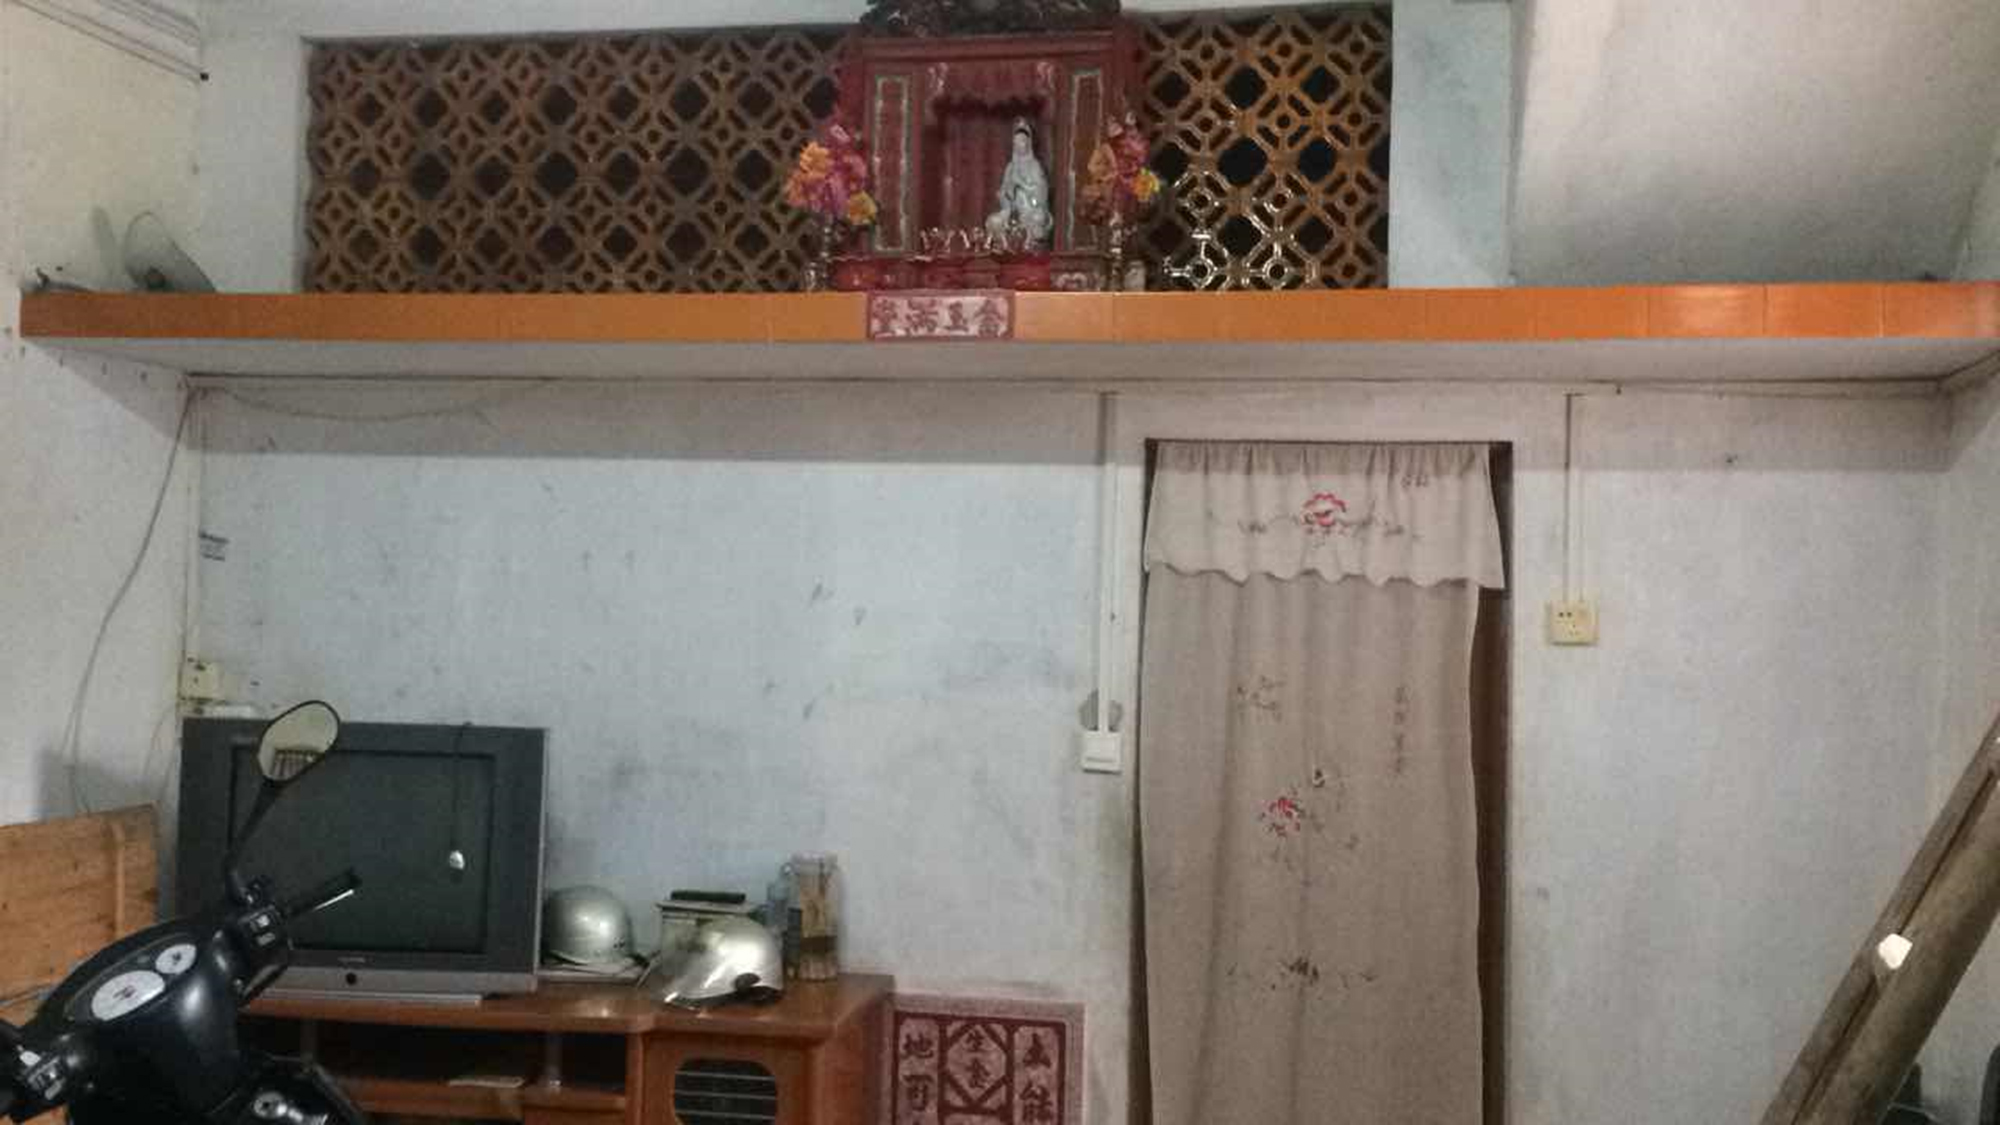 Figure 3. Spirit tablet in the old house. Photograph by JiaJun Liu, 2019.